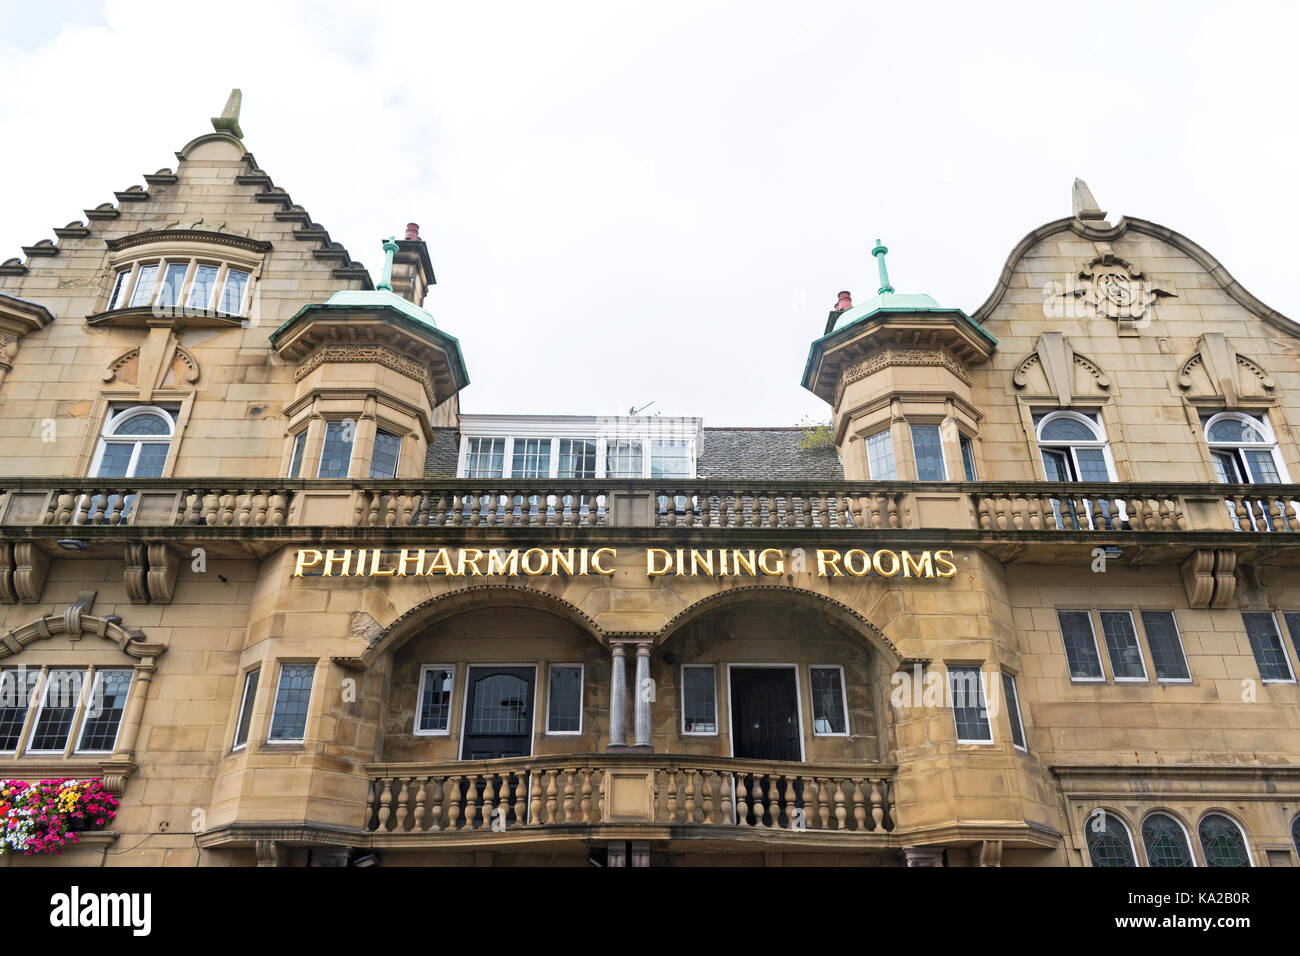 the philharmonic pub and dining rooms in liverpool, england, uk. - Stock Image